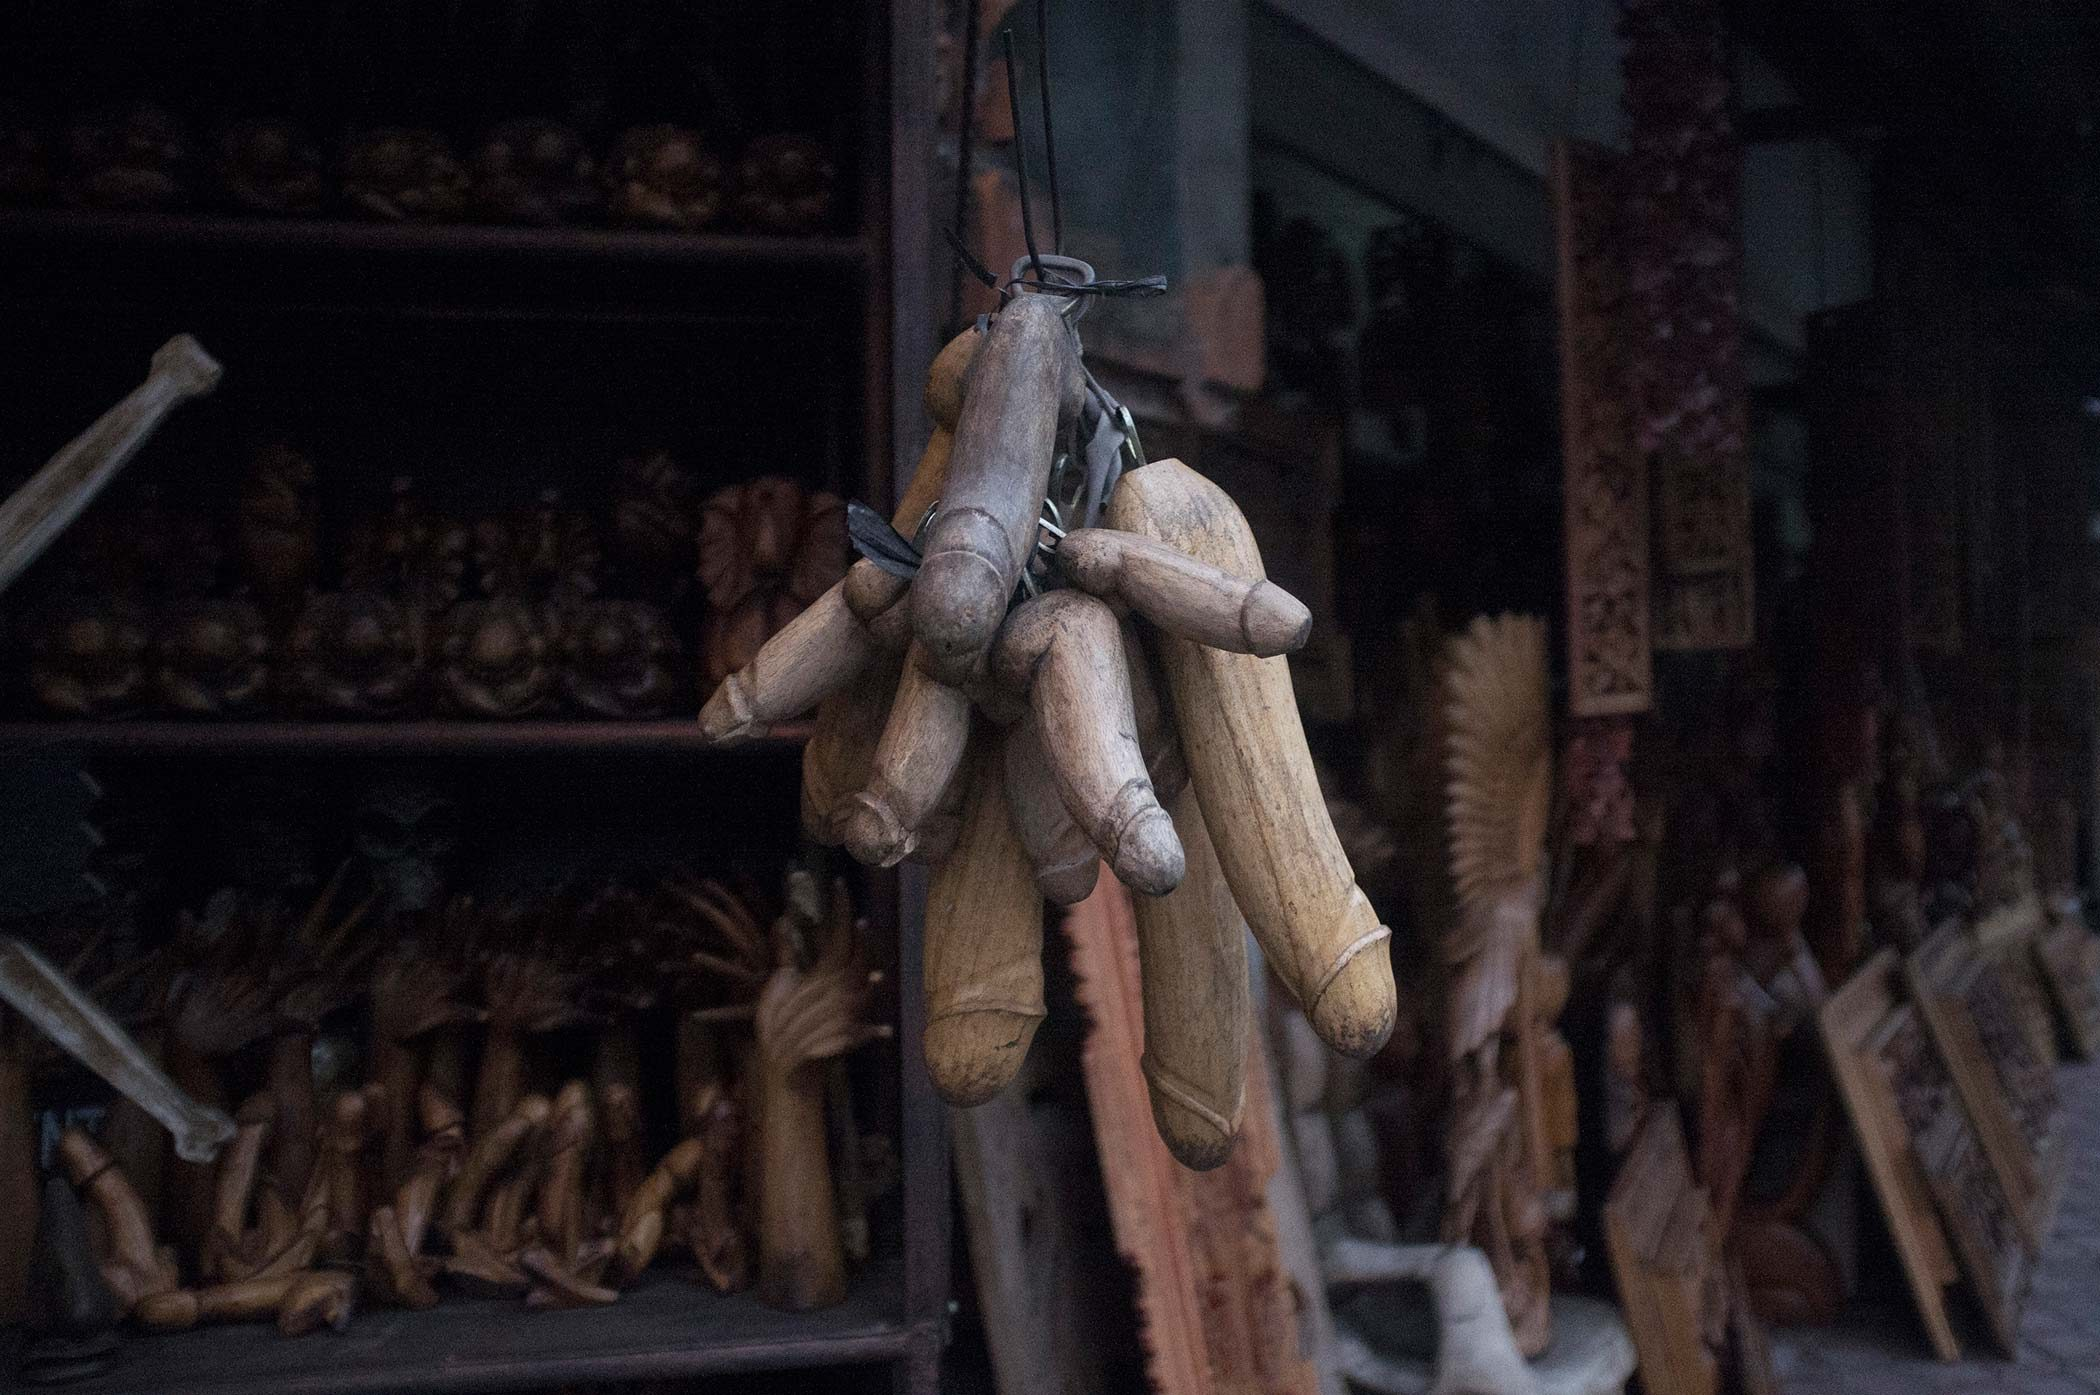 Balinese are great wood carvers. Wood carved dildo beer-openers.